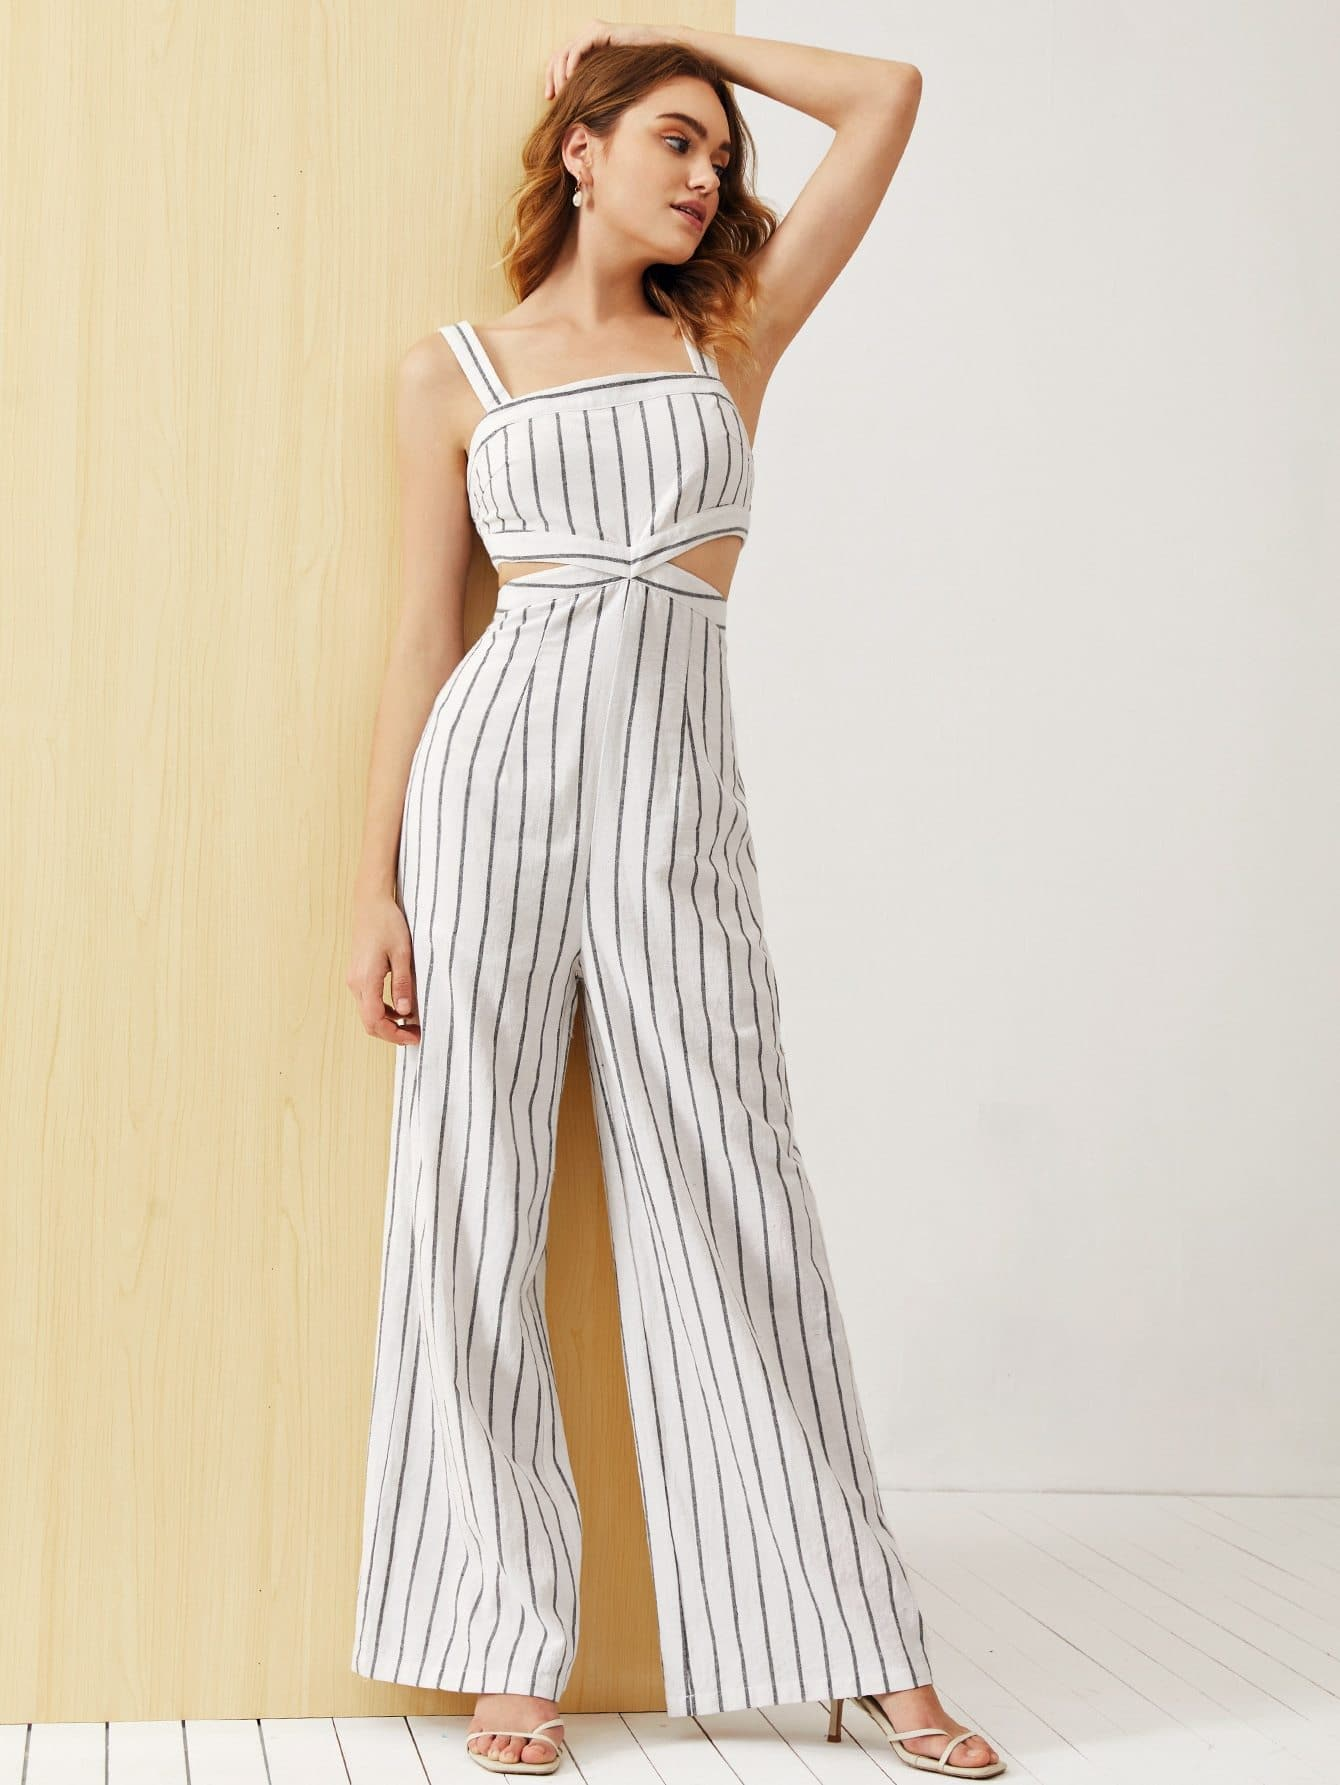 Cut Out Waist Wide Leg Striped Slip Jumpsuit - FLJ CORPORATIONS